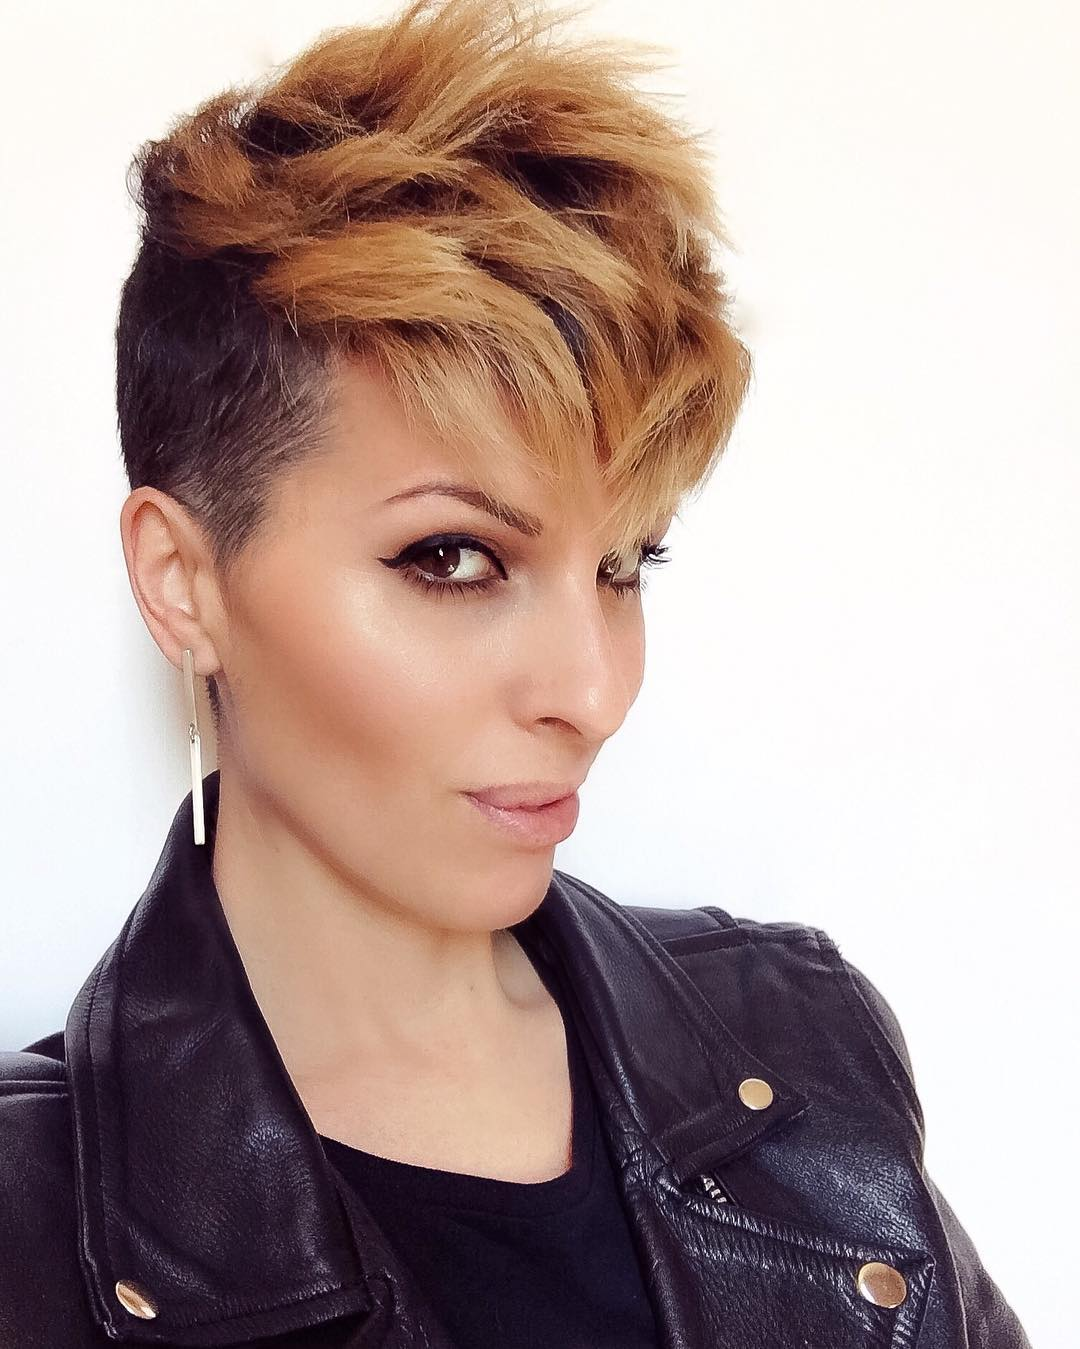 24+ Short Hairstyle Designs, Ideas For Girls